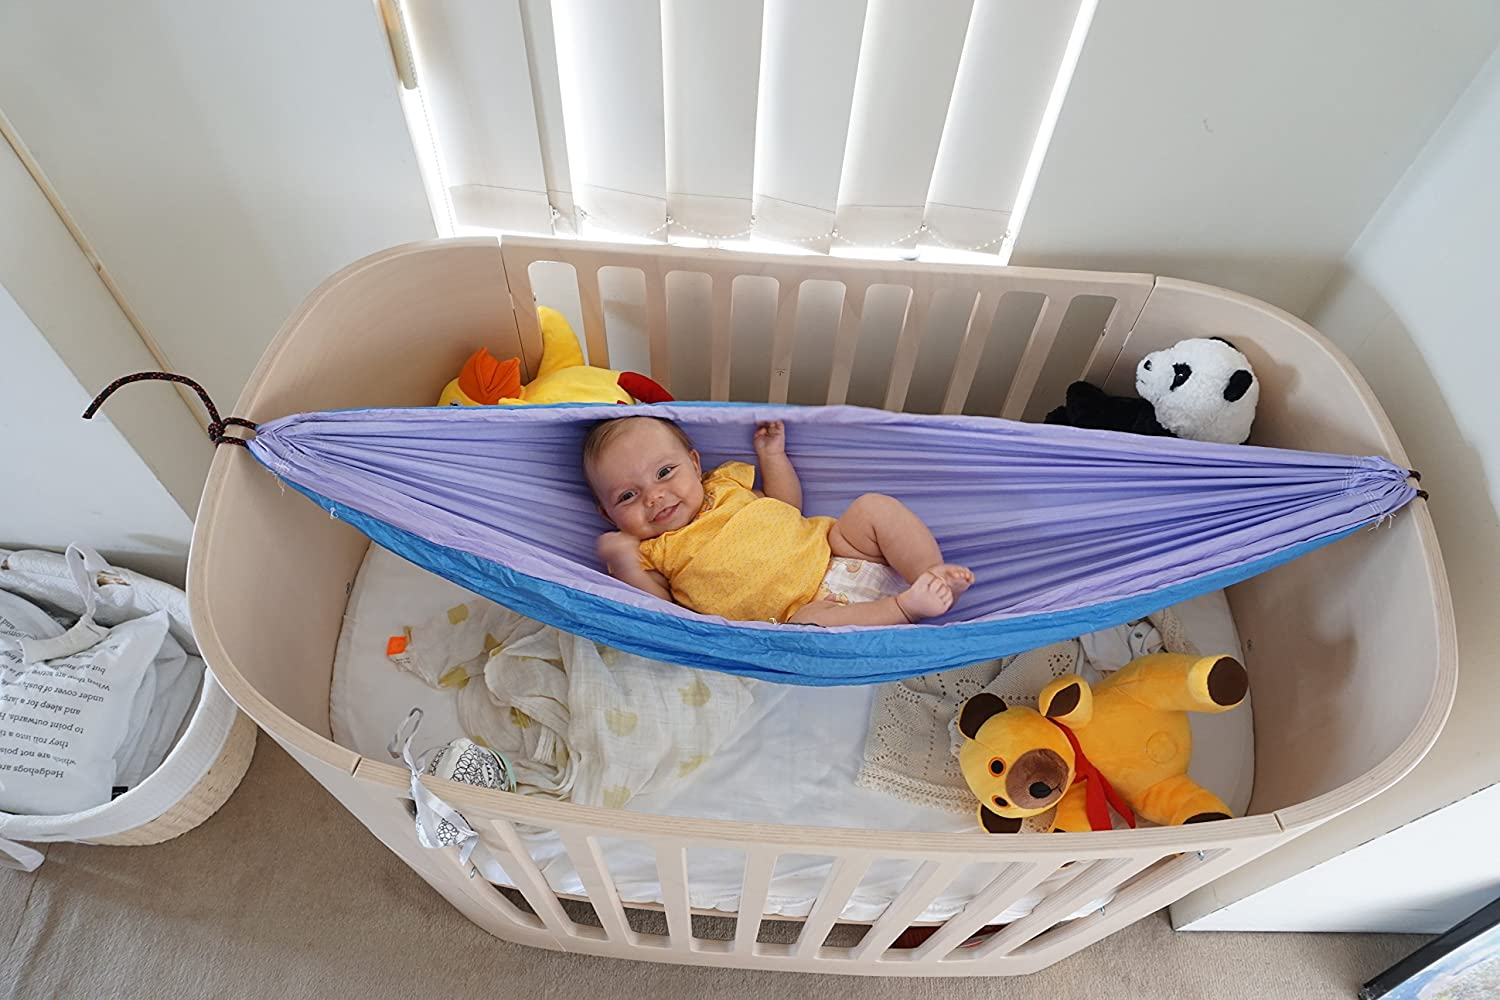 Baby crib hammock - Amazon Com Hammock Bliss Sky Baby Hammock The Idea Solution For Putting Baby To Sleep Use In The Crib Or On The Go Patio Lawn Garden